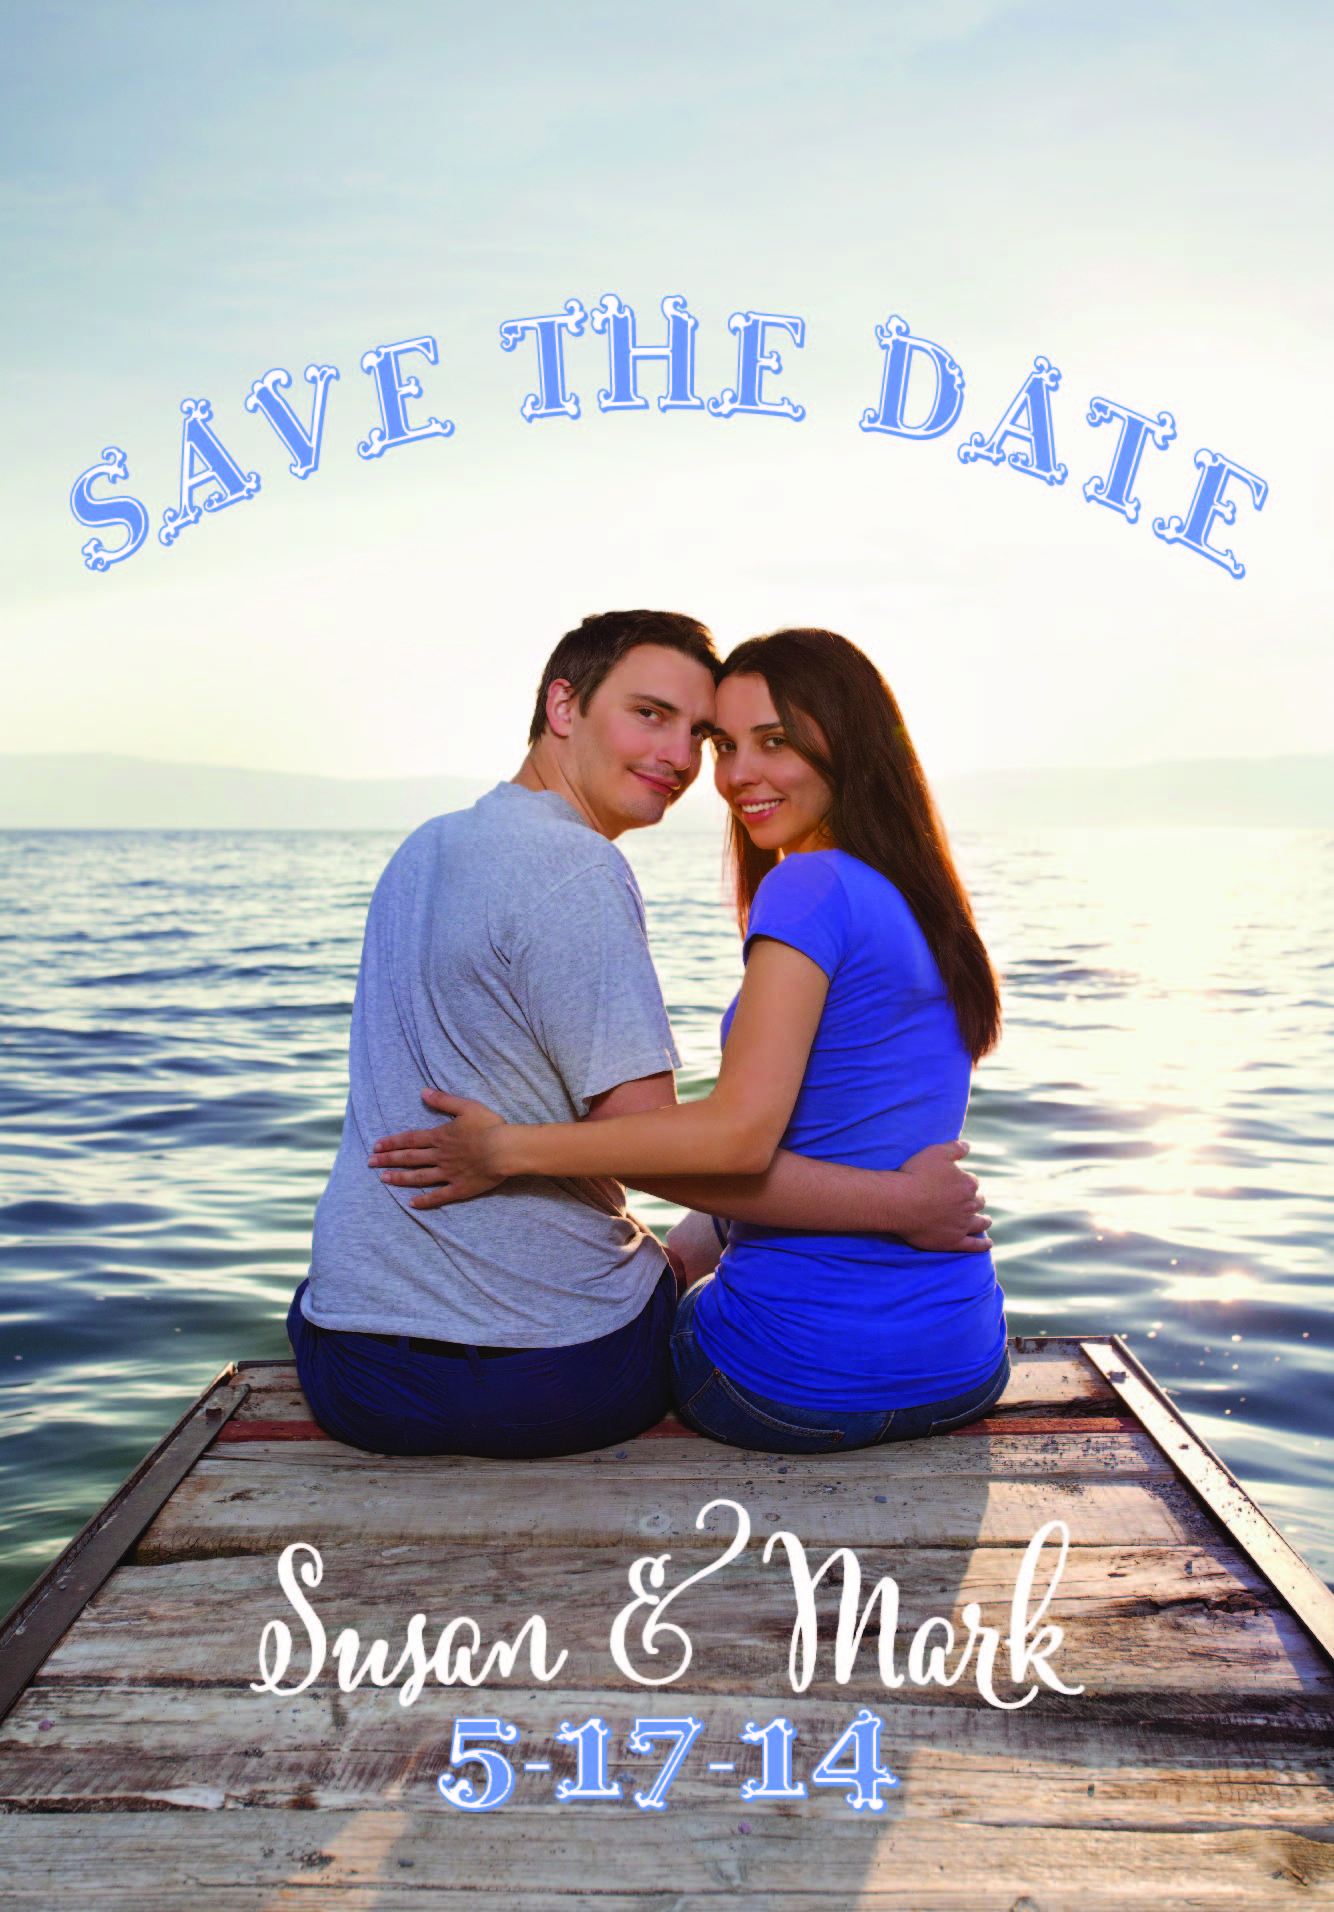 Photo-save-the-date-postcard-by-Lucky-Invitations